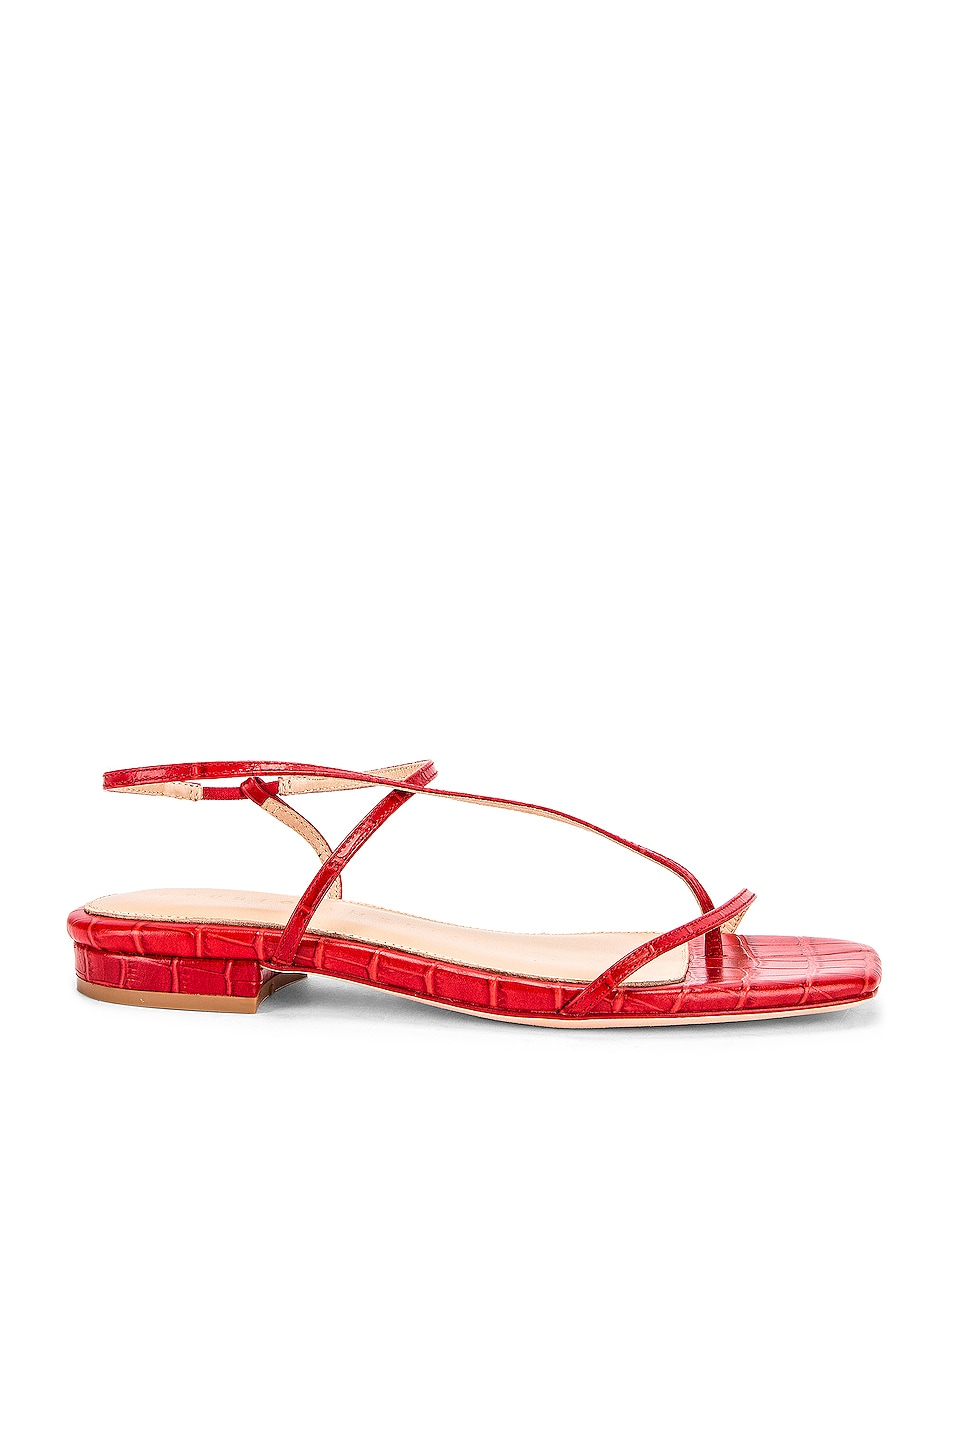 Image 1 of Studio Amelia 1.2 Sandal in Red Croc